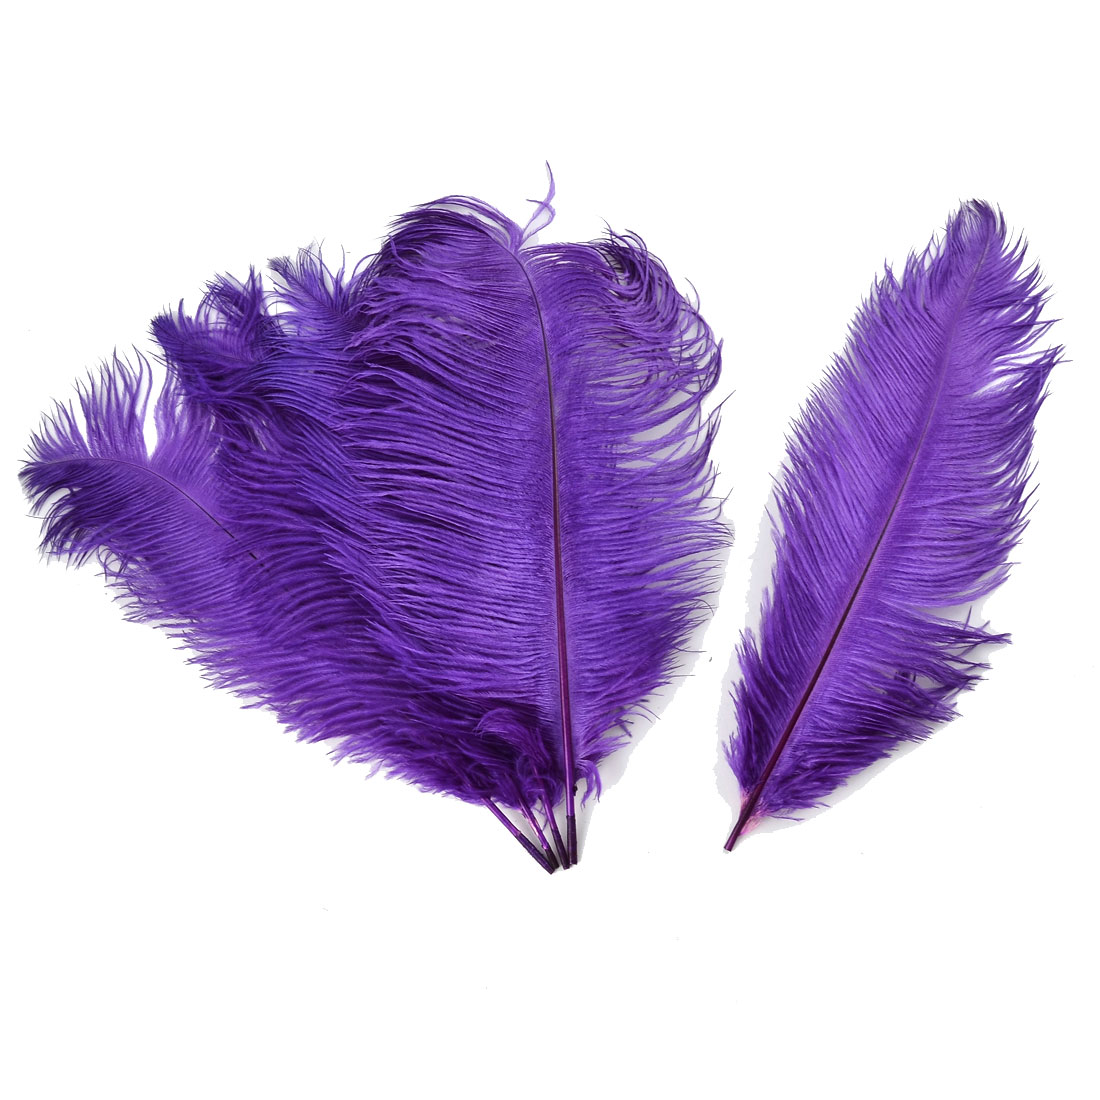 Household Wedding Party Ornament Artificial Ostrich Feather Plume Purple 30-35cm 5pcs